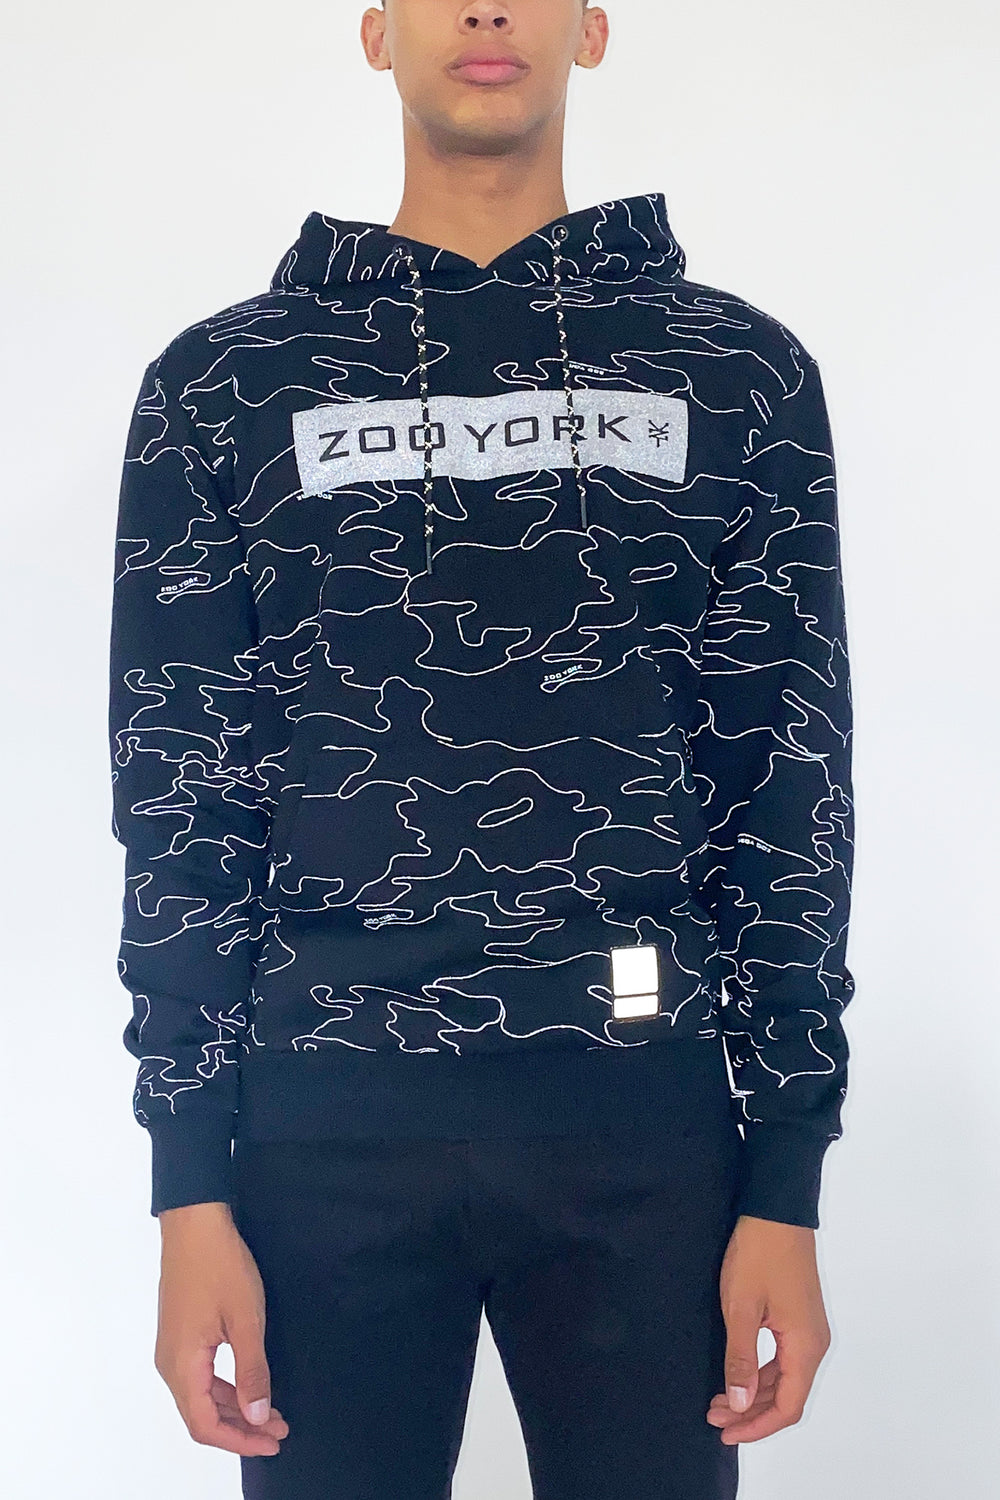 Zoo York Mens Reflective Camo Hoodie Buffalo Check